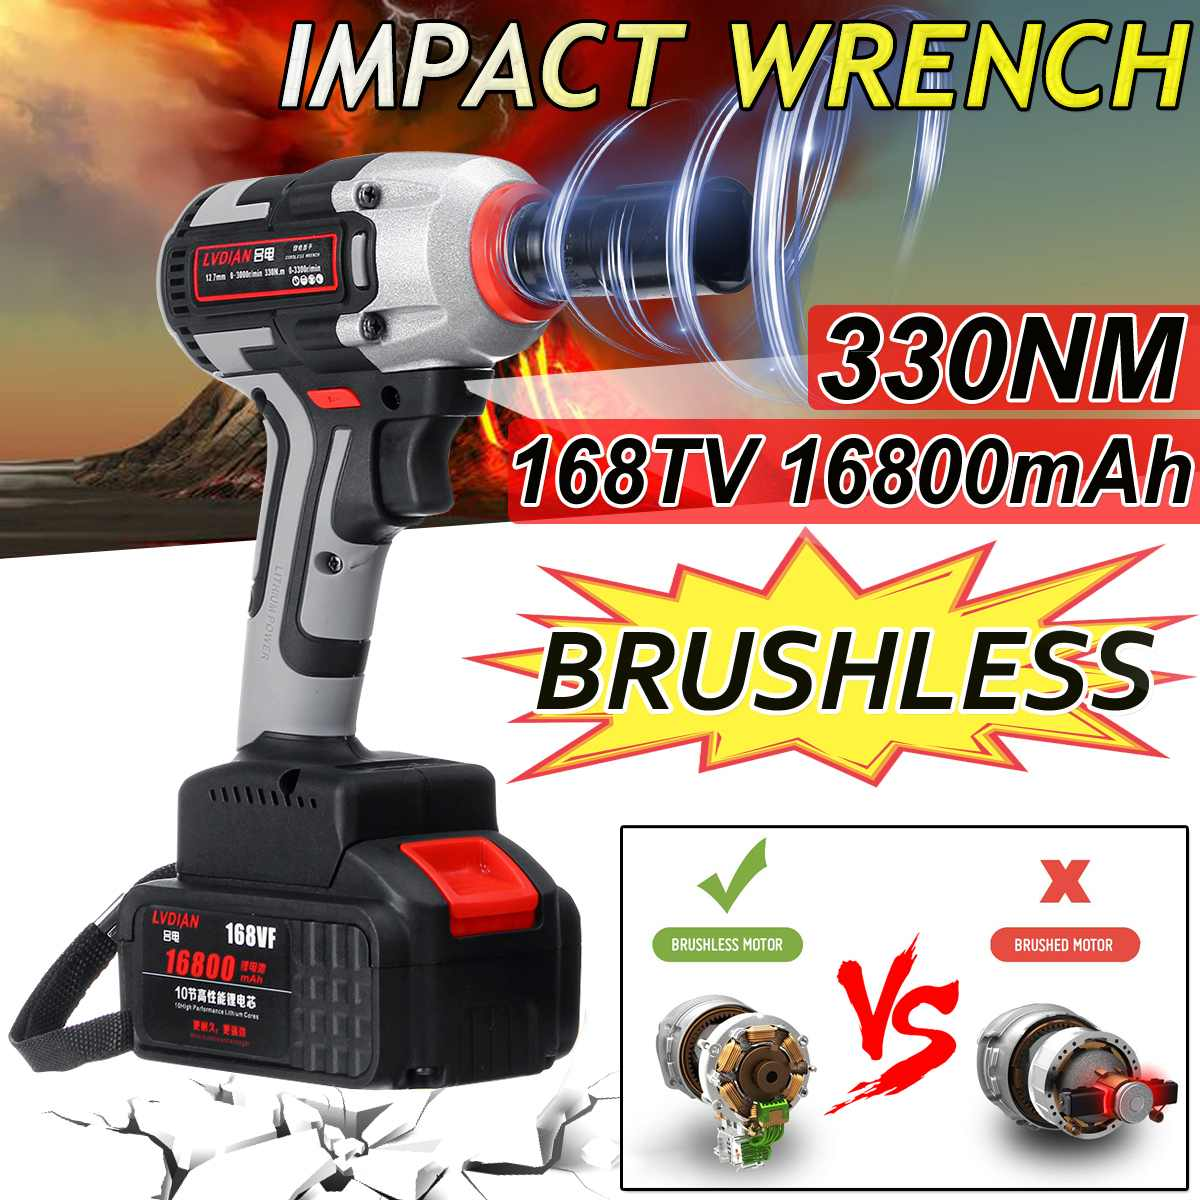 New 16800mAh 330NM Brushless Cordless Electric Wrench Impact Driver Power Tool Rechargeable Lithium Battery Household Drill